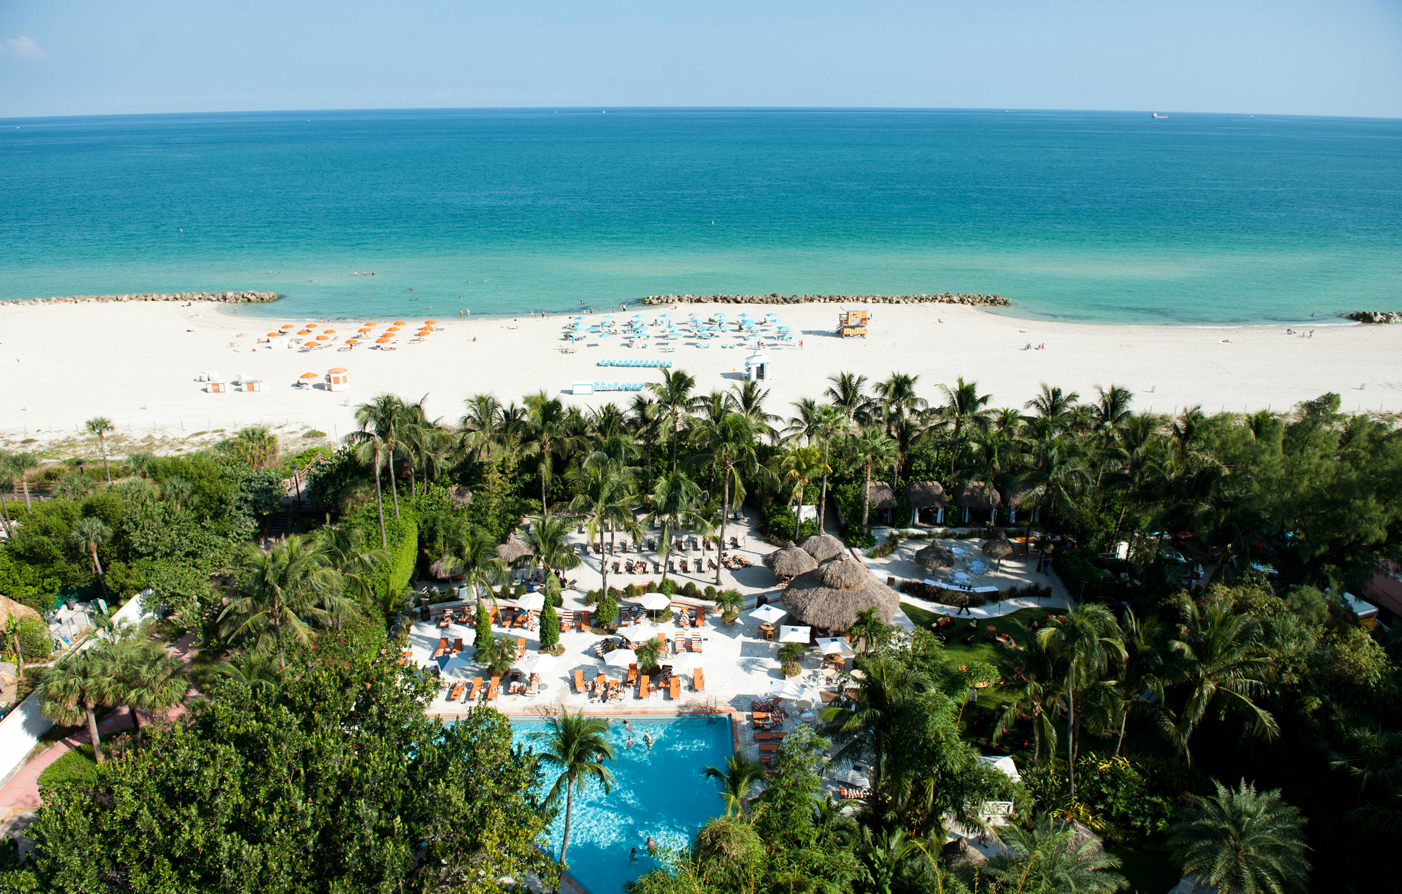 Top 10 affordable beachfront hotels in america lost waldo for Best hotel in america